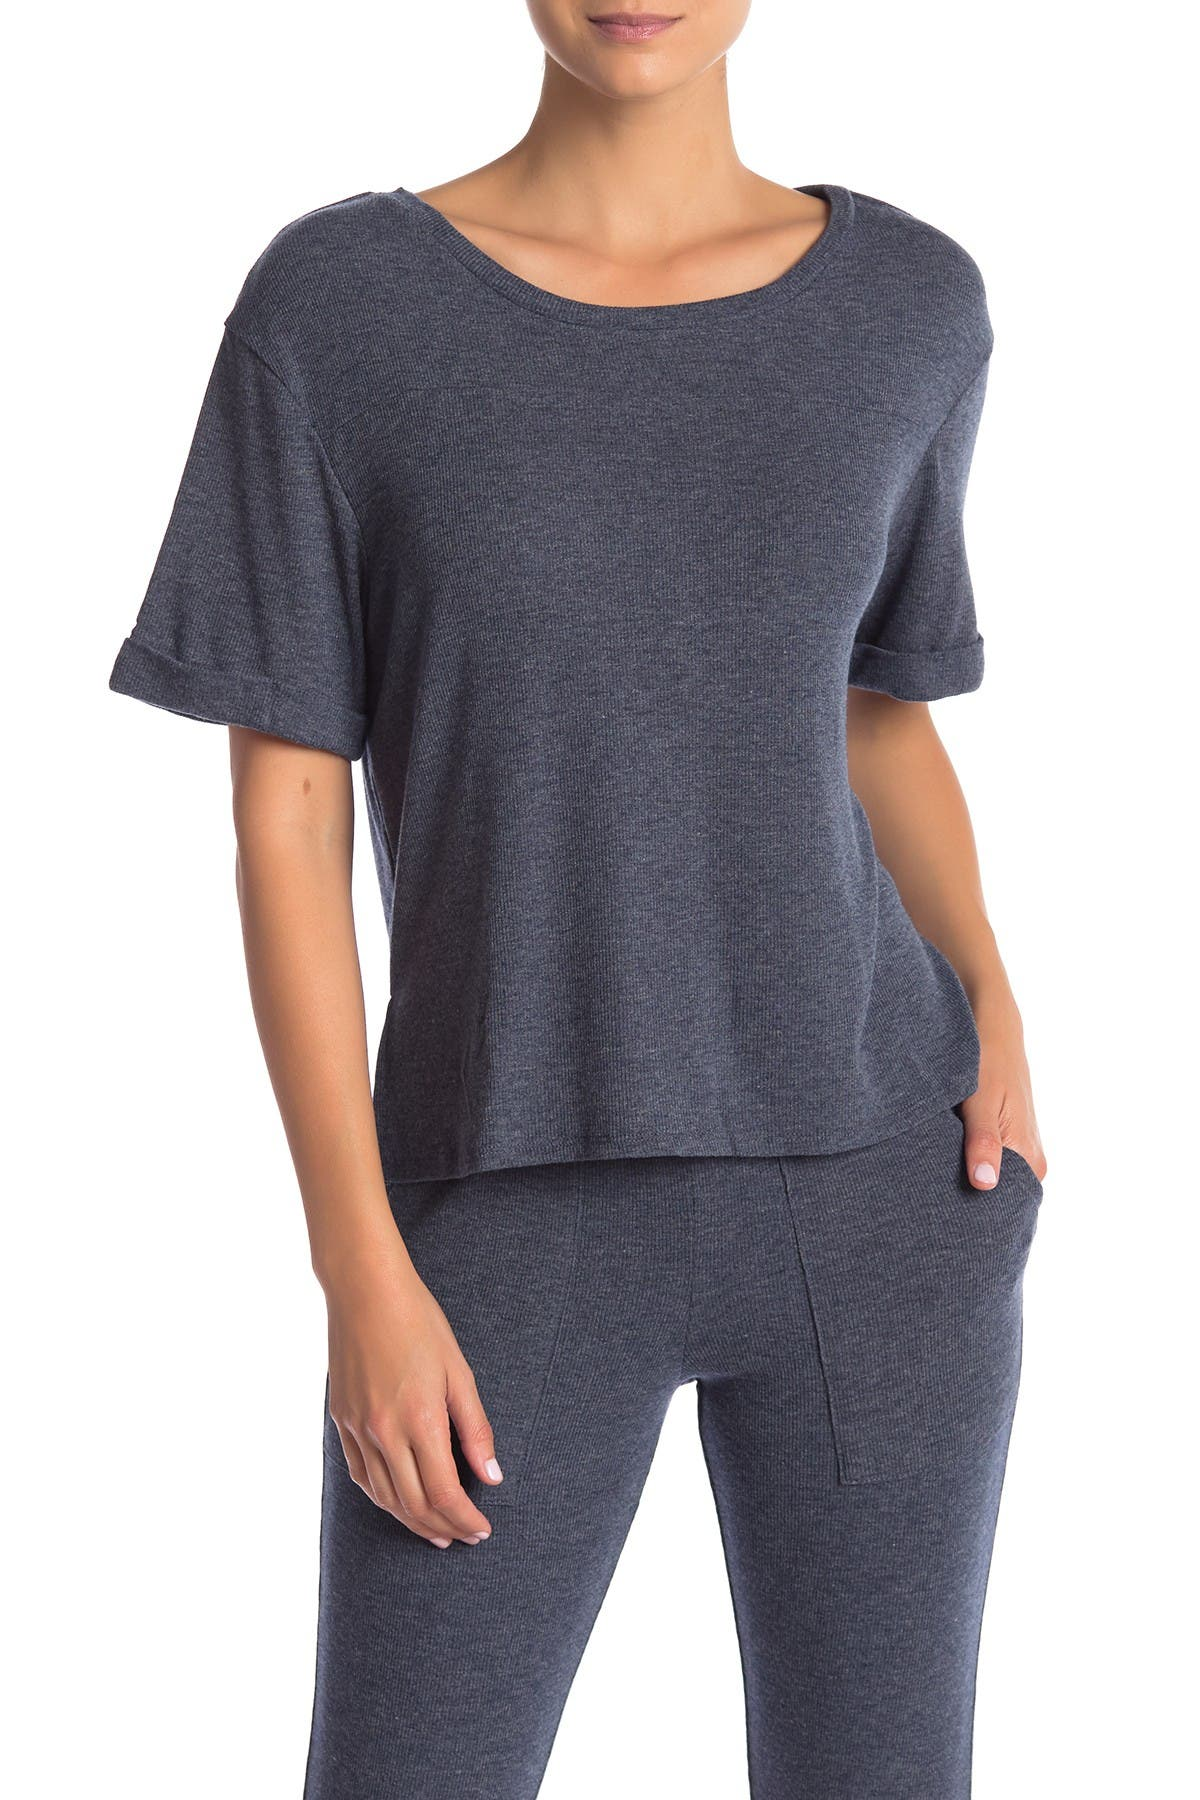 Image of Honeydew Intimates Evie Ribbed Knit Lounge T-Shirt